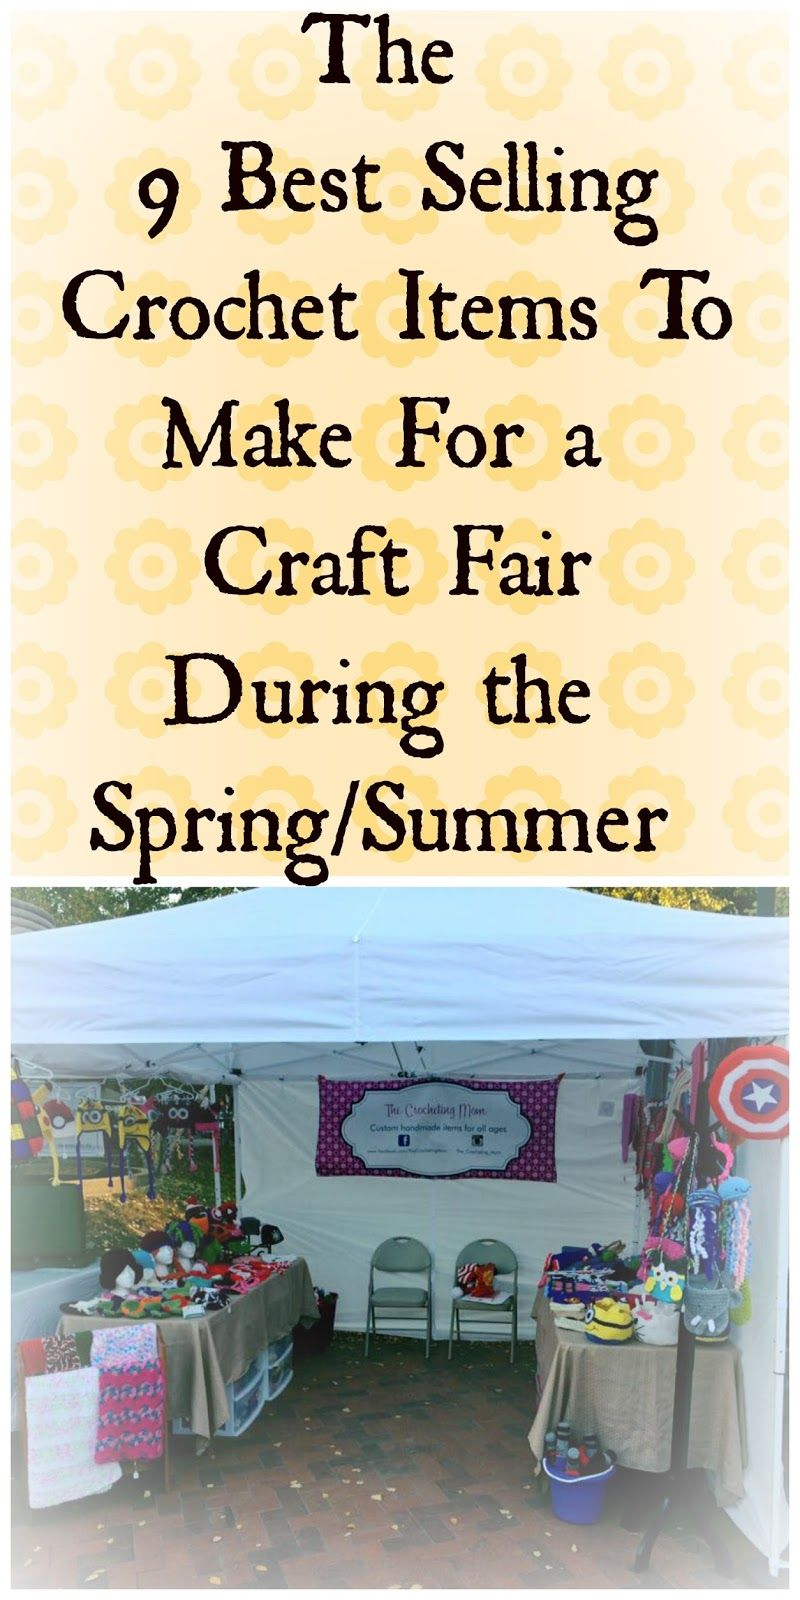 summer craft ideas to sell 9 best selling crochet items for a warm weather craft fair 7210